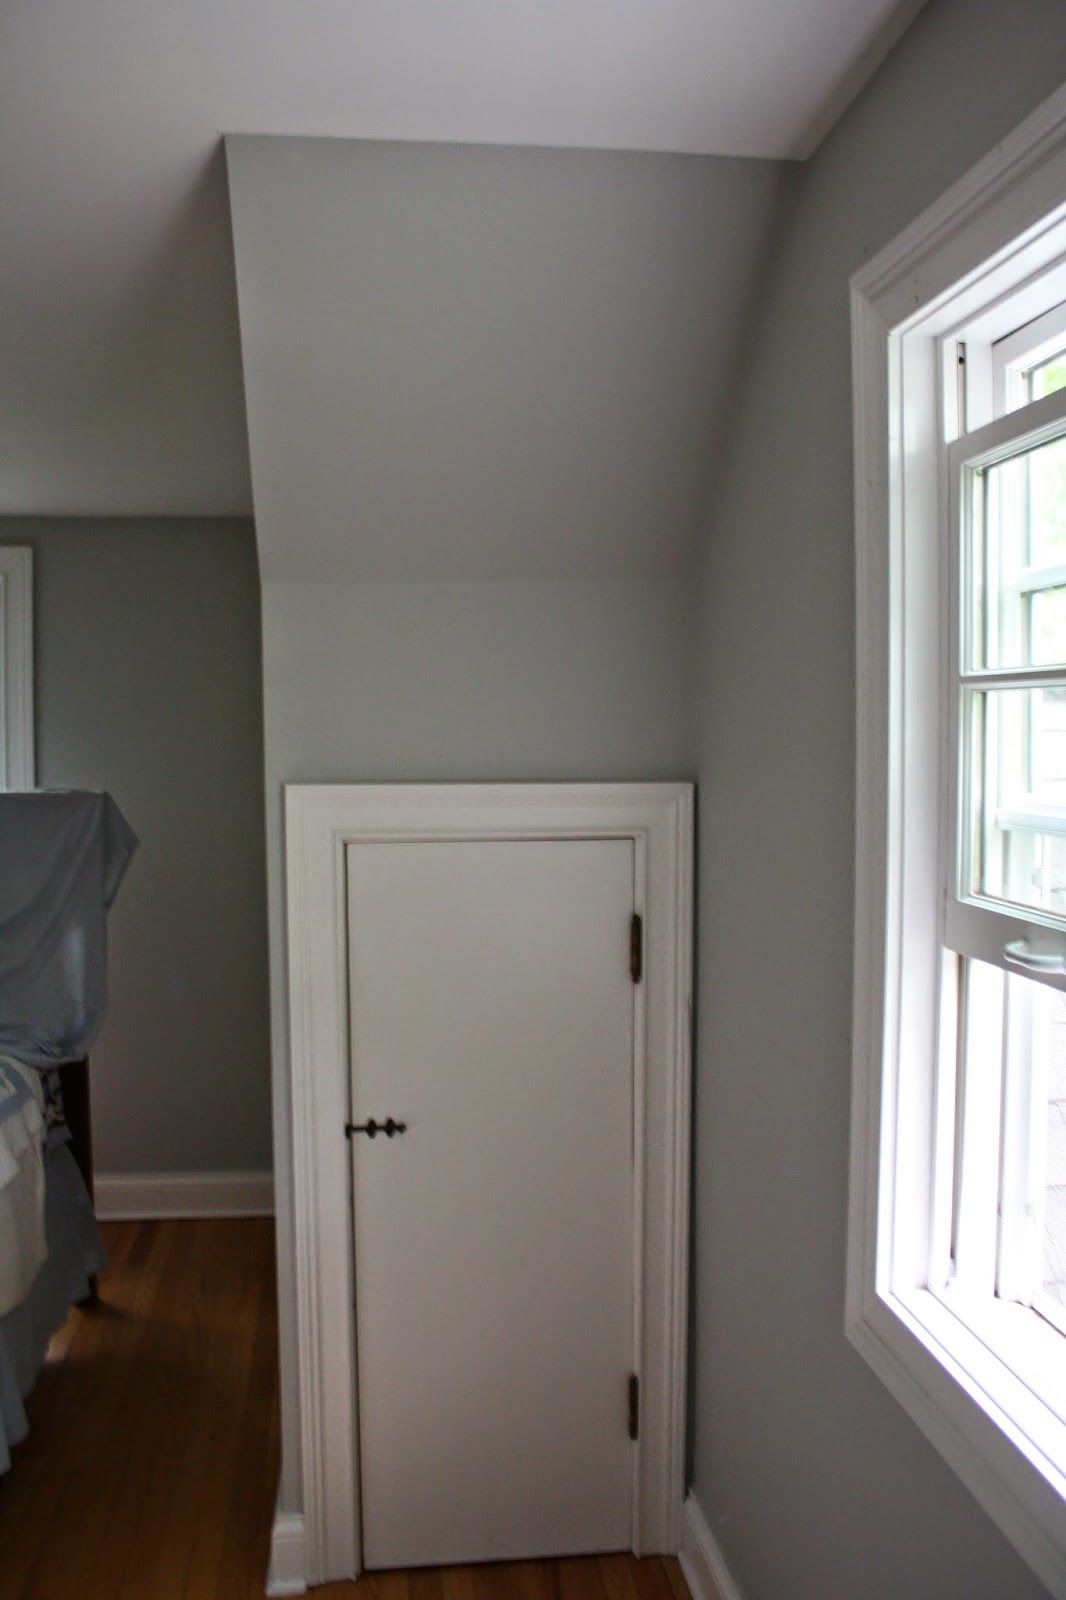 f3ed46468e71731f303801c1c1f7e74e Painted Gray For Living Room Lighting Ideas on lighting for laundry rooms, lighting for master bedroom, lighting for vaulted ceiling ideas, lighting for curtains, lighting for basement ideas, lighting for stairways, lighting for high ceilings ideas, lighting for family room, lighting for dining room, lighting for interior design, lighting for small living room, lighting for deck ideas, lighting for staircase ideas, lighting for tall ceilings ideas, lighting for bedroom ideas, lighting for food, lighting for hallways ideas, lighting for bathroom, lighting for kitchen, lighting for teen bedrooms,